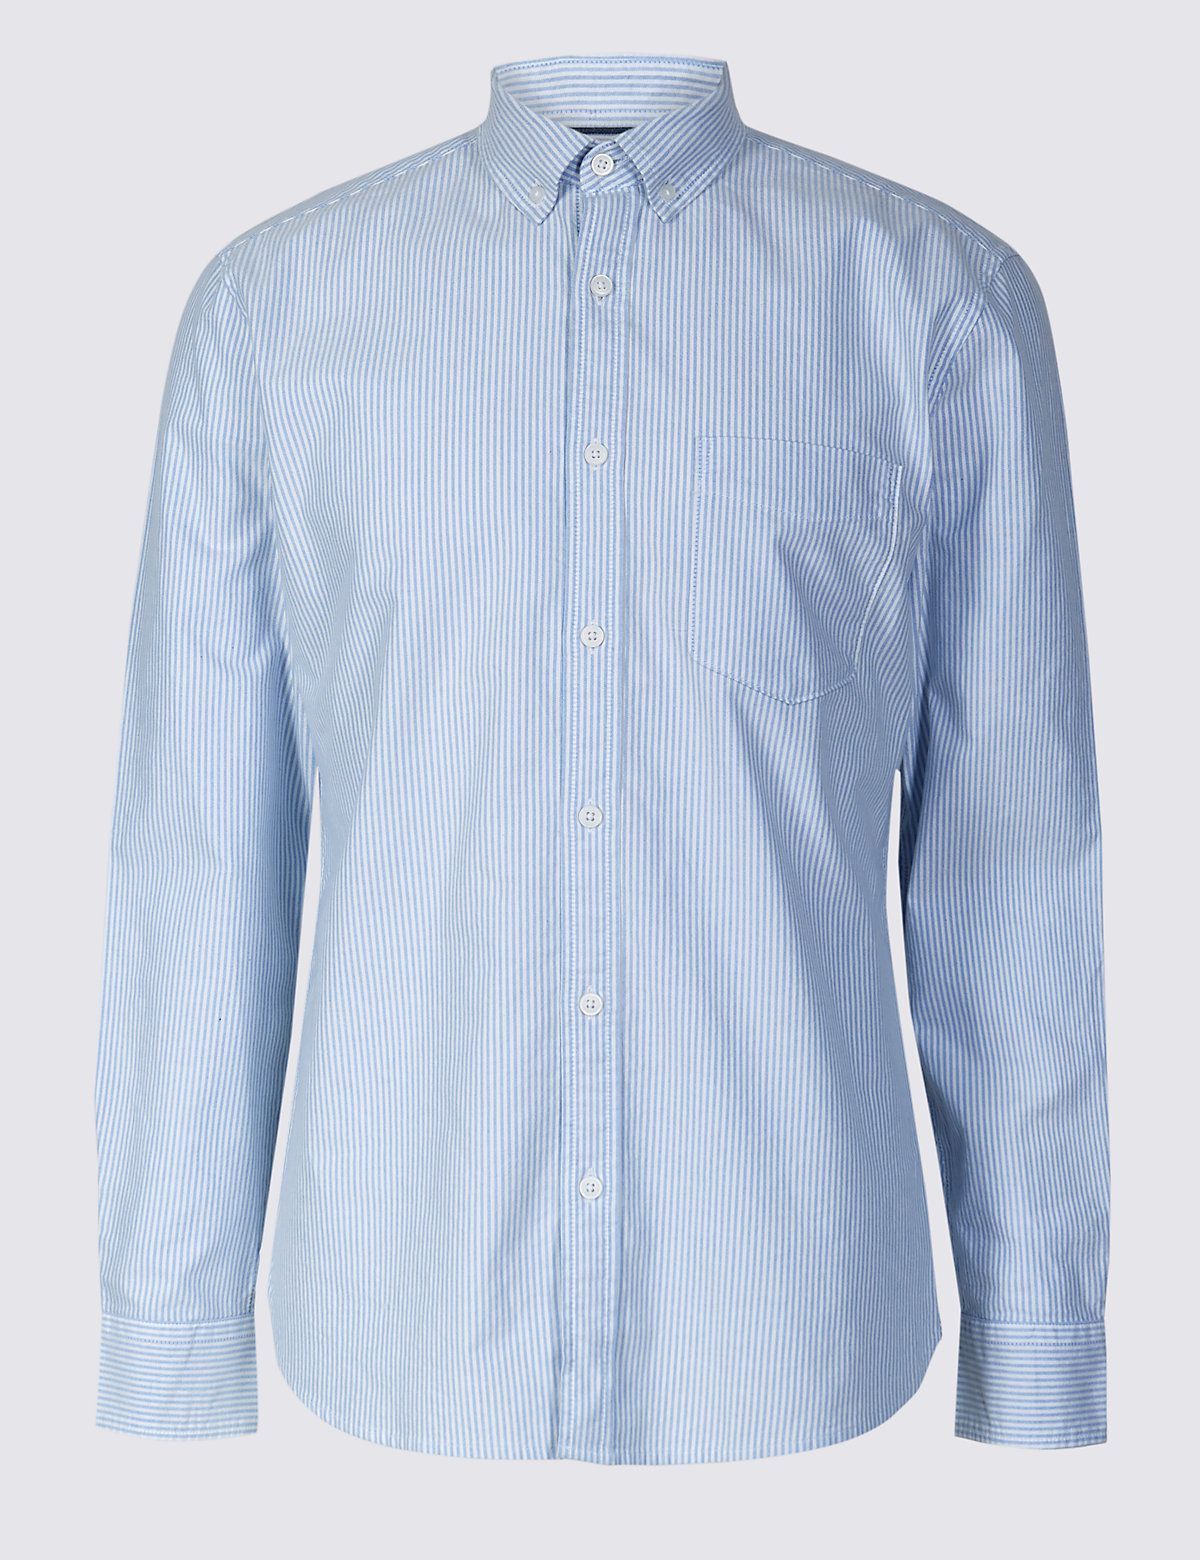 Marks & Spencer Blue Pure Cotton Slim Fit Shirt with Pocket